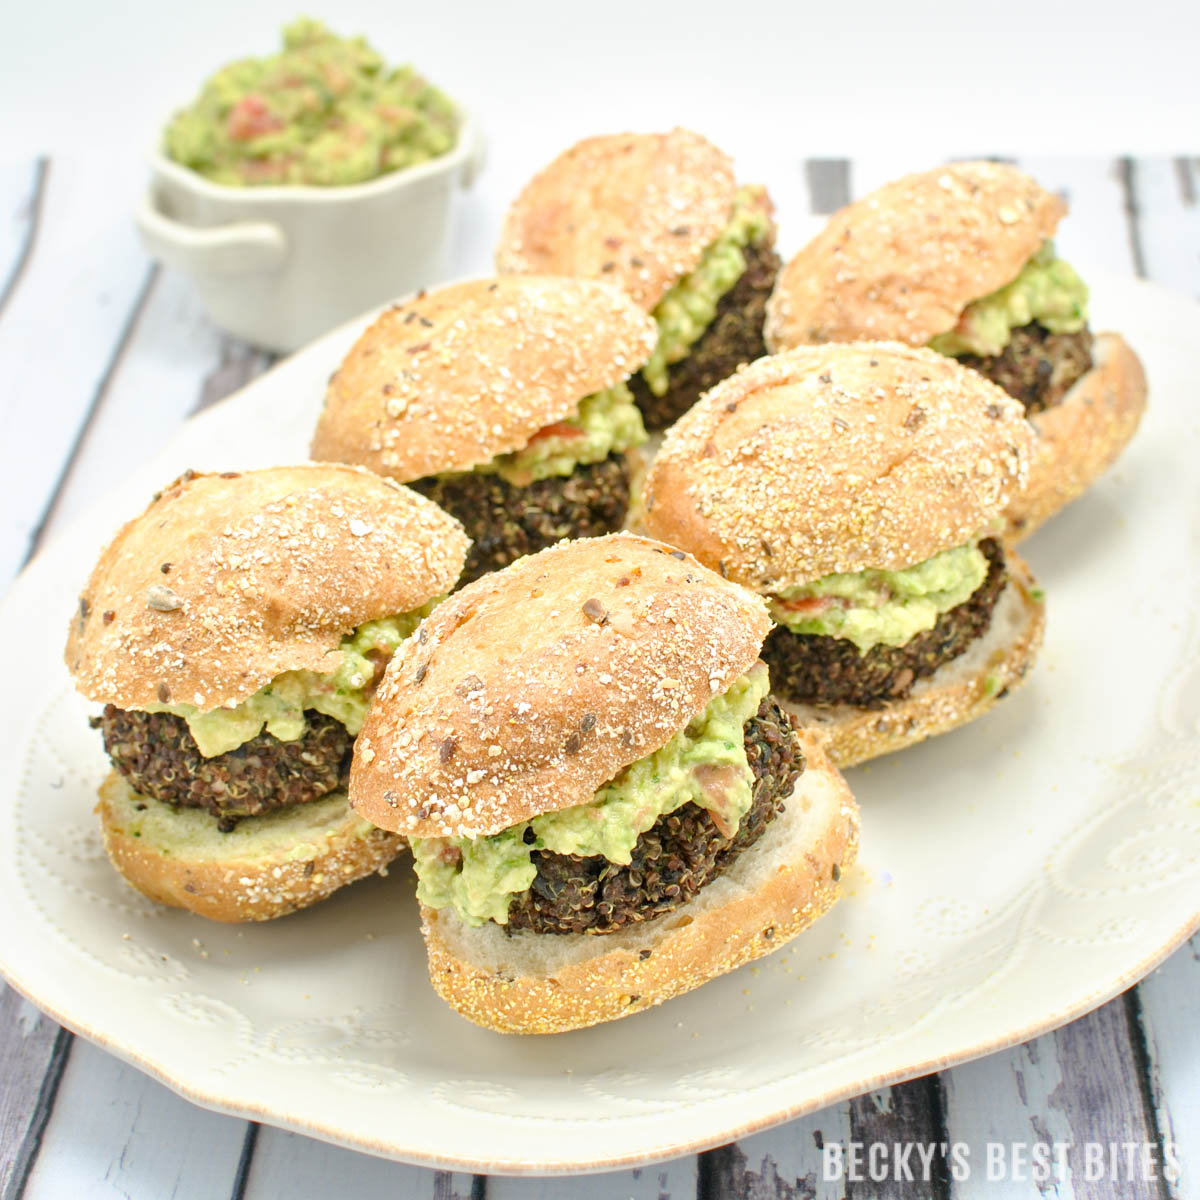 Red Quinoa and Black Bean Sliders with Easy Guacamole Spread is an easy, healthy, vegetarian, appetizer recipe for any game day spread or Super Bowl party!! | beckysbestbites.com